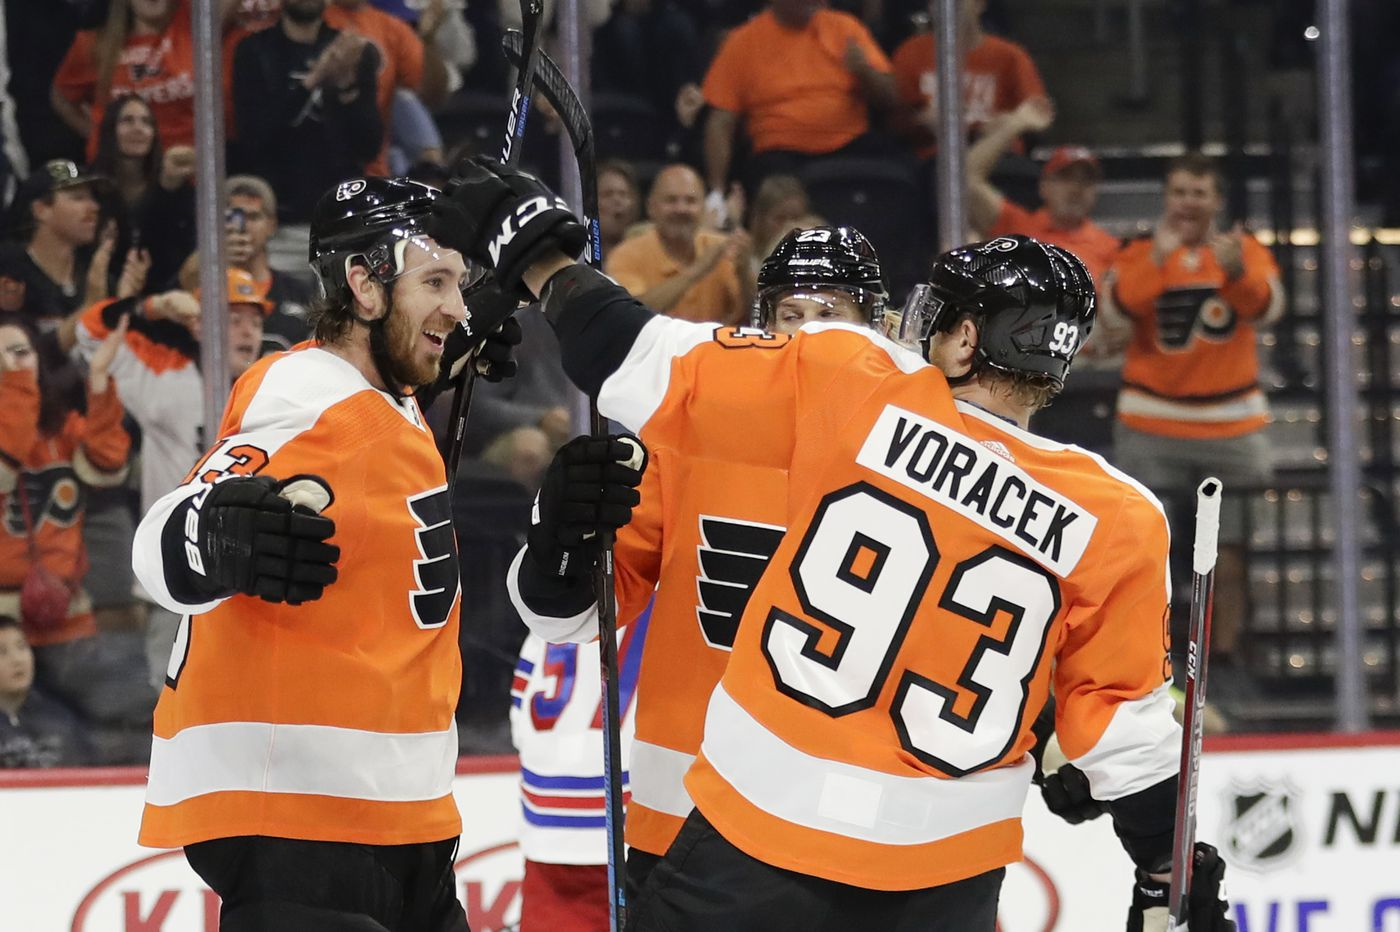 Flyers roster: Salary info, contract statuses, who has a birthday coming up, and other quirks